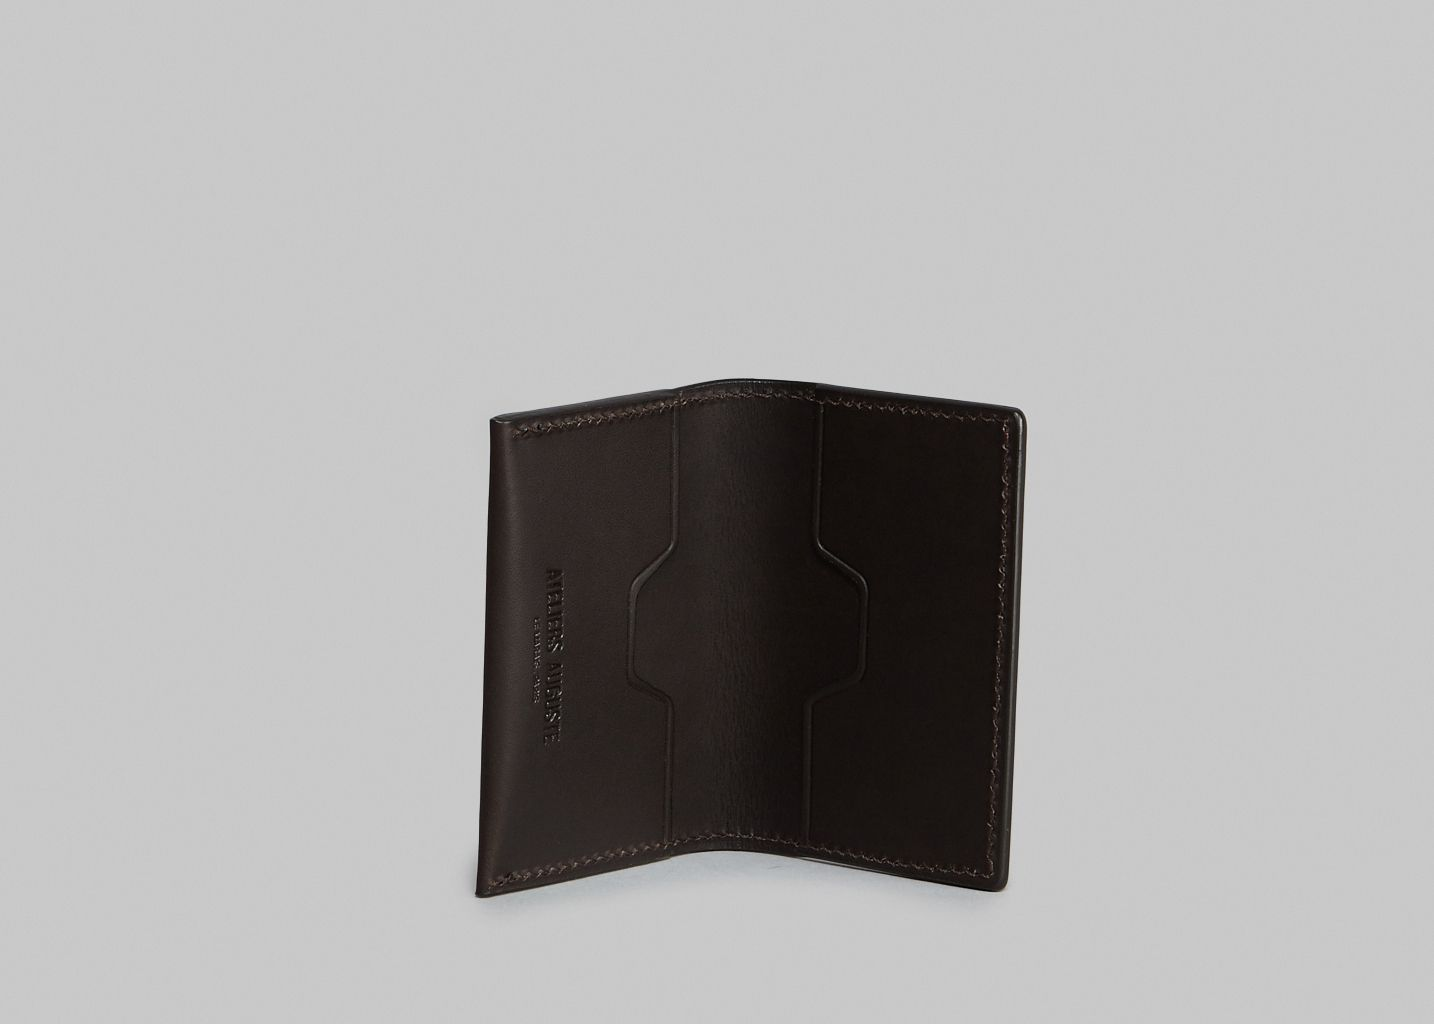 Choiseul Card Holder - Ateliers Auguste